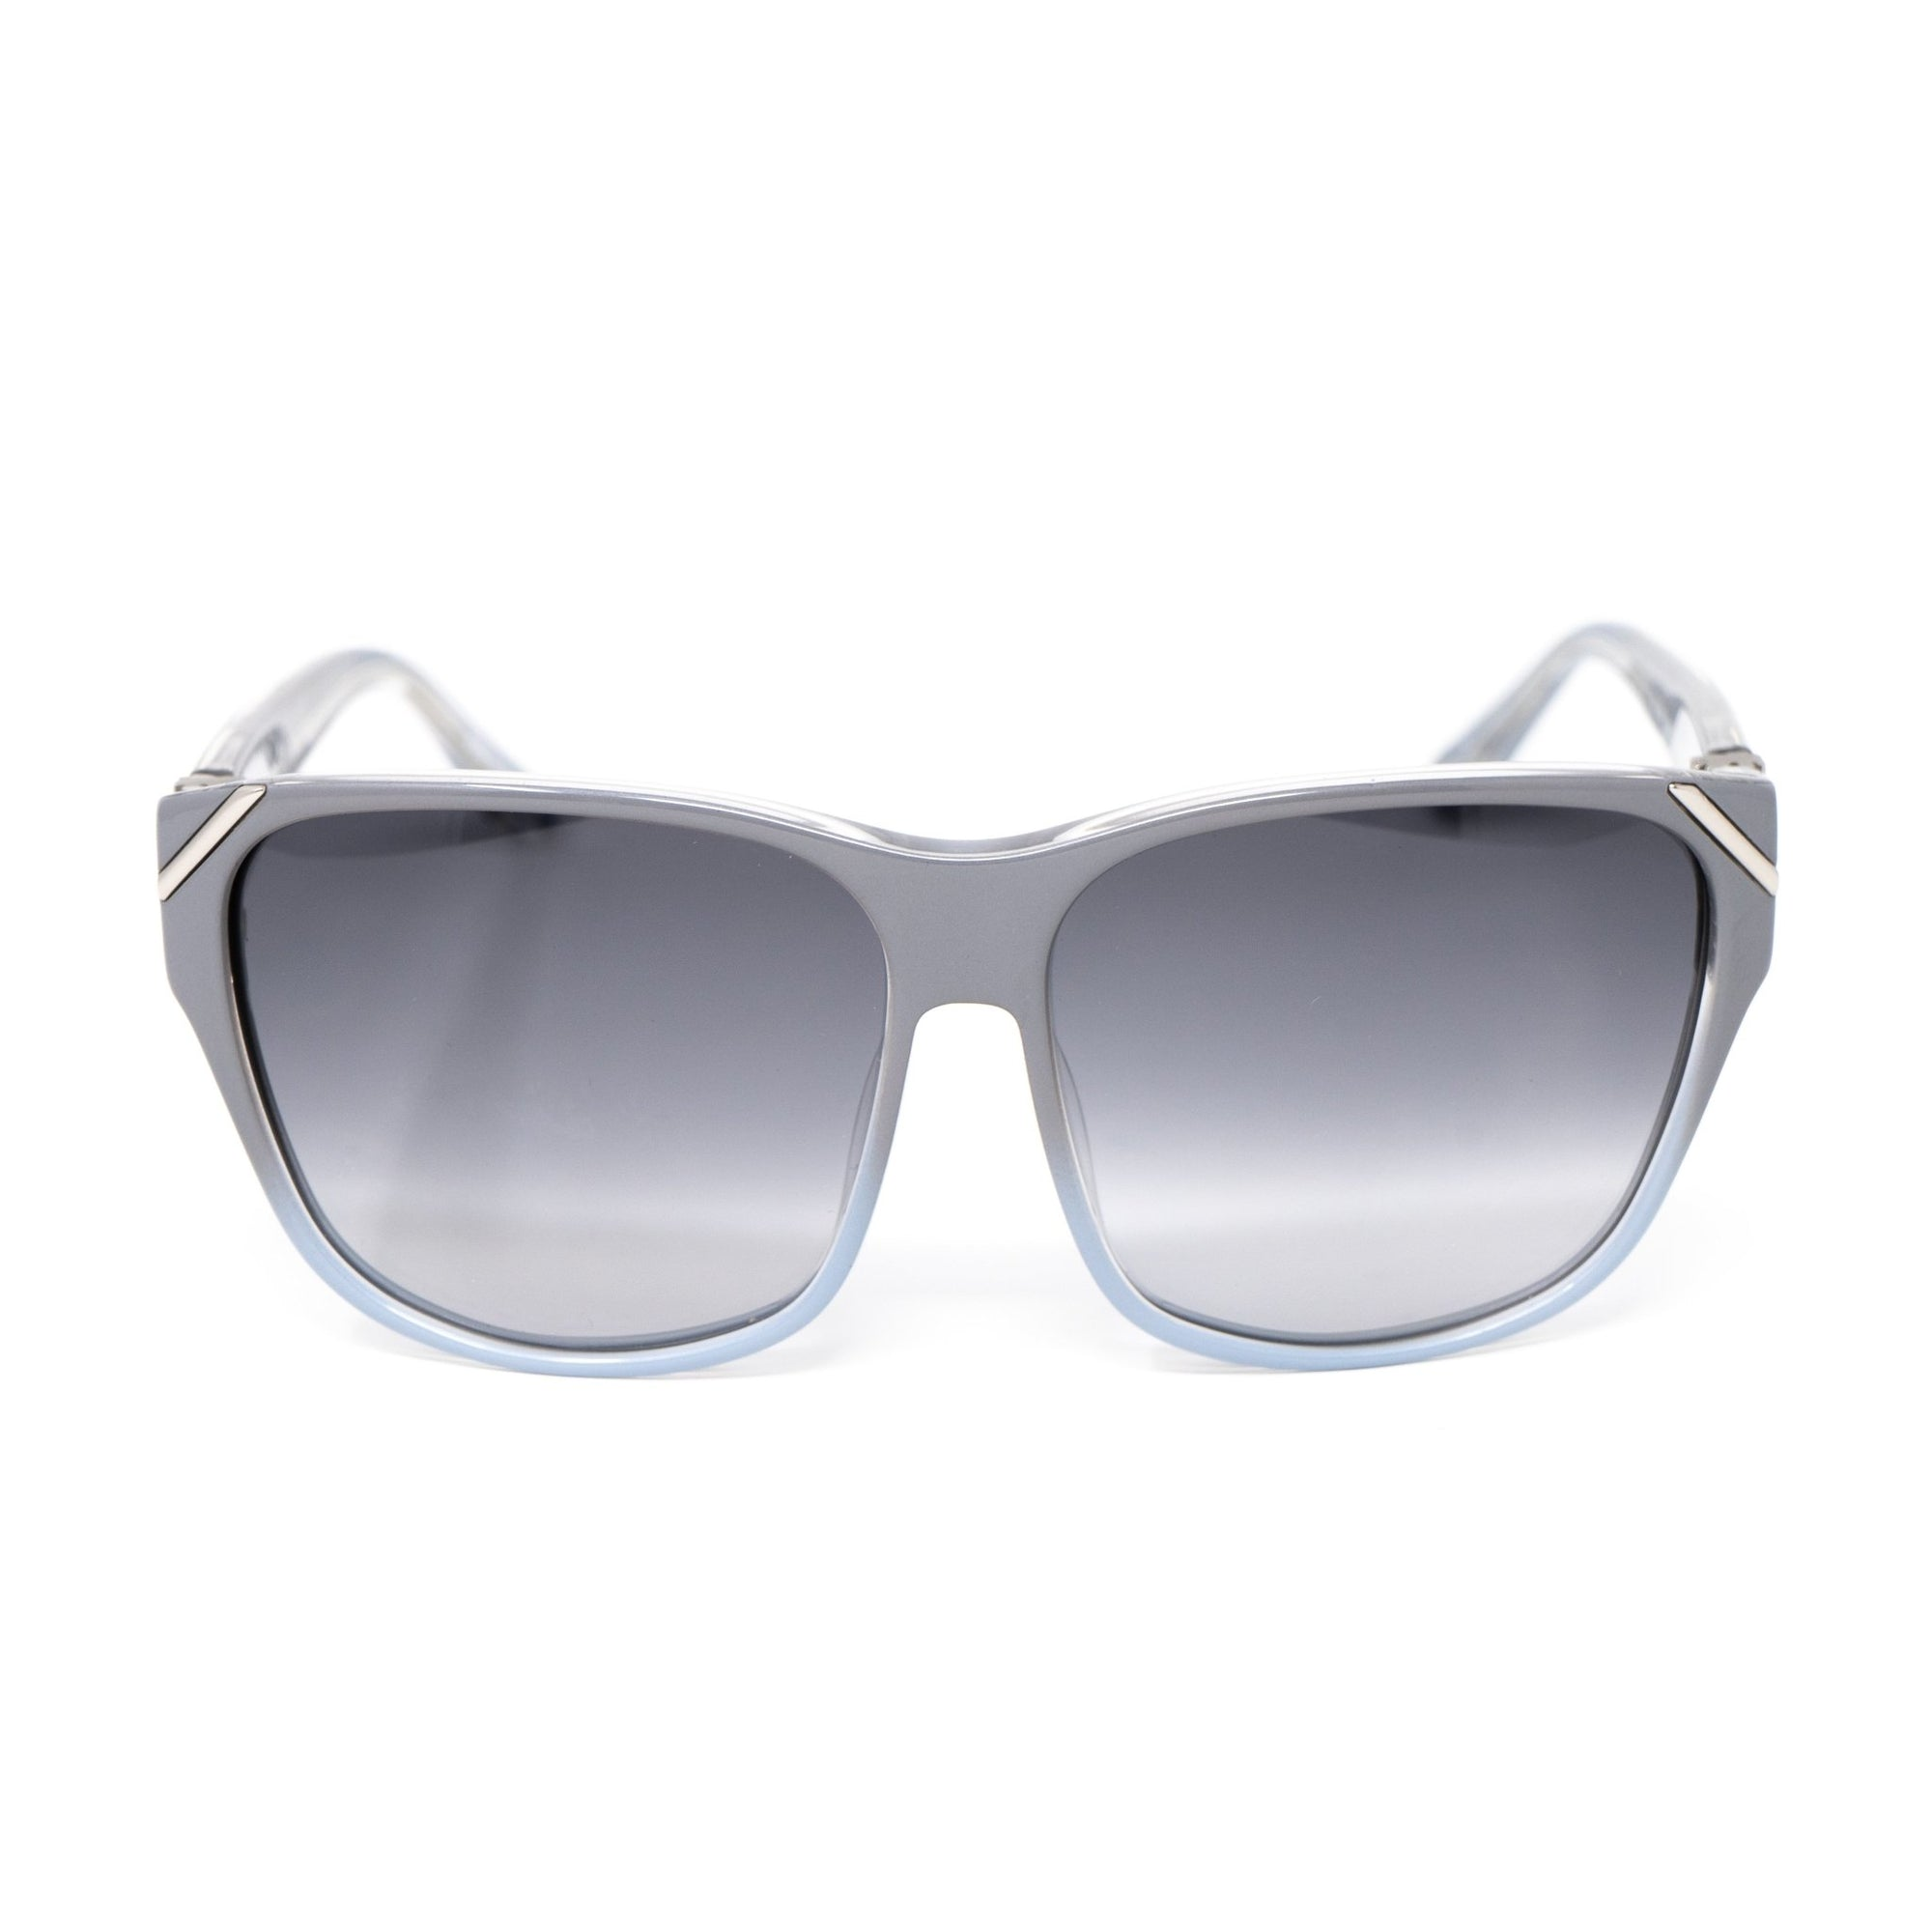 Yohji Yamamoto Unisex Sunglasses Square Grey and Grey Lenses - YY15C2SUN - Watches & Crystals